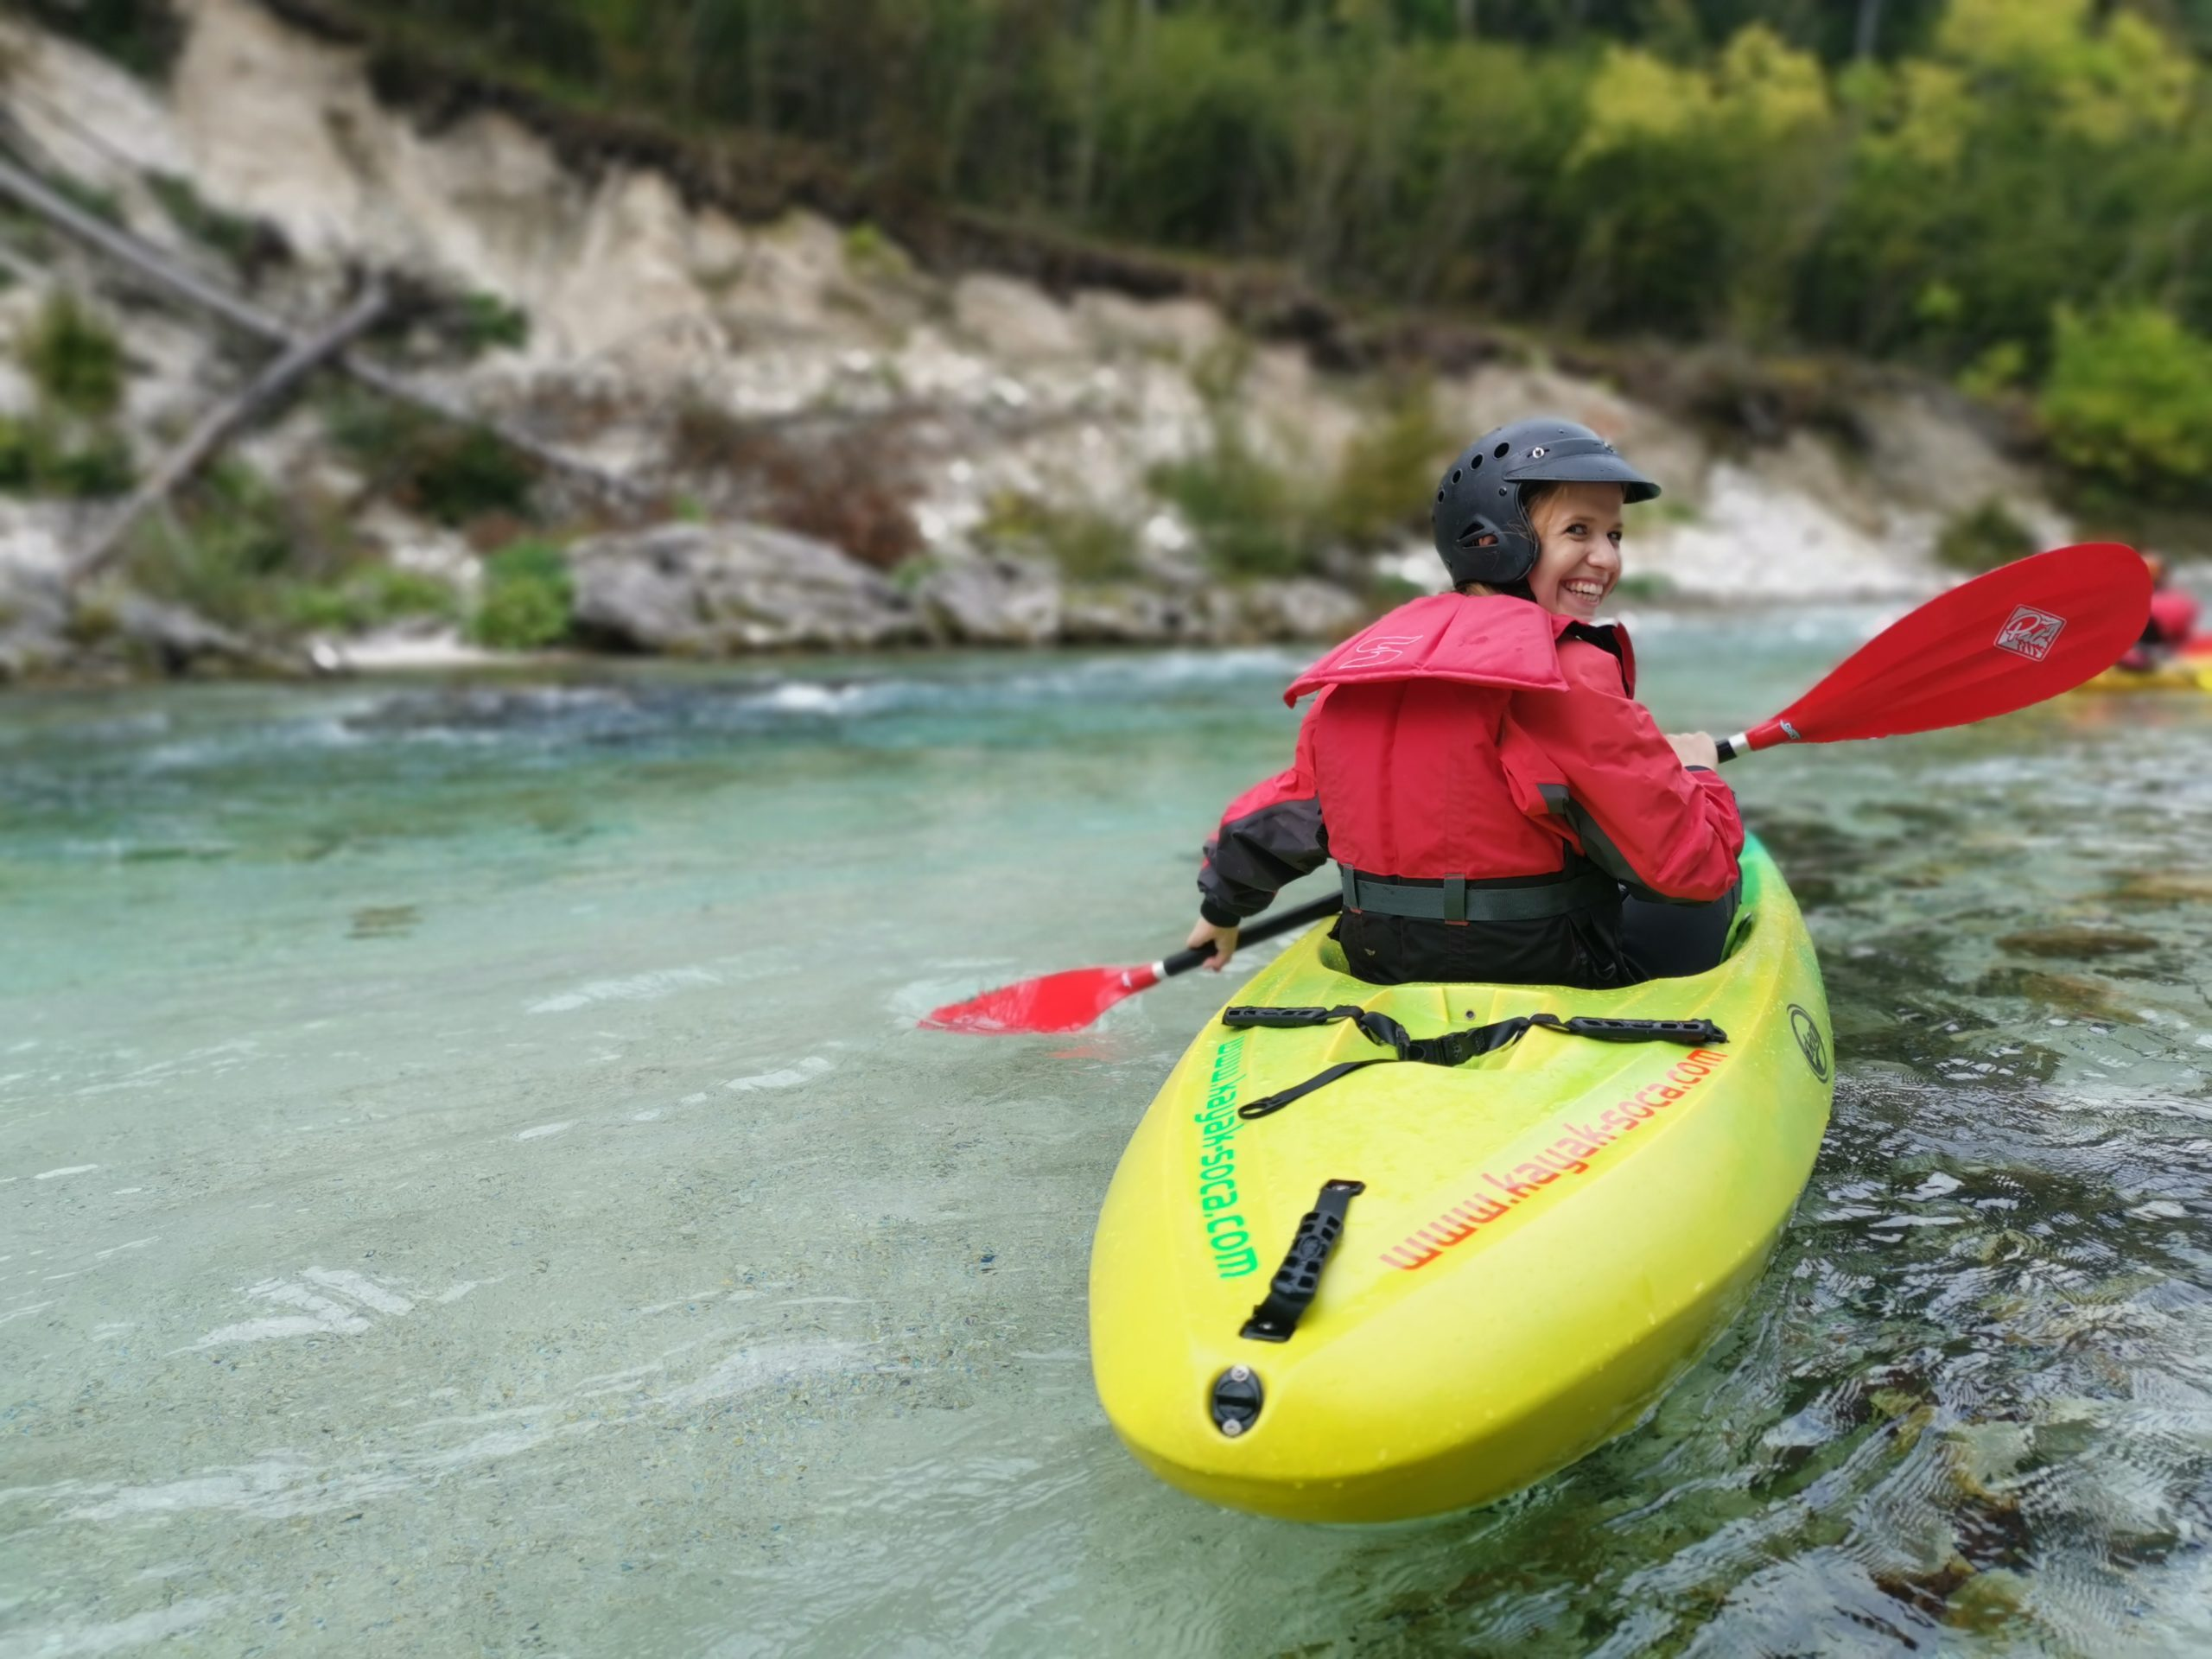 Daily Julian Alps Experience With Kayaking To Secret Spots On Soča River | Zelenci | Kayak-soca.com